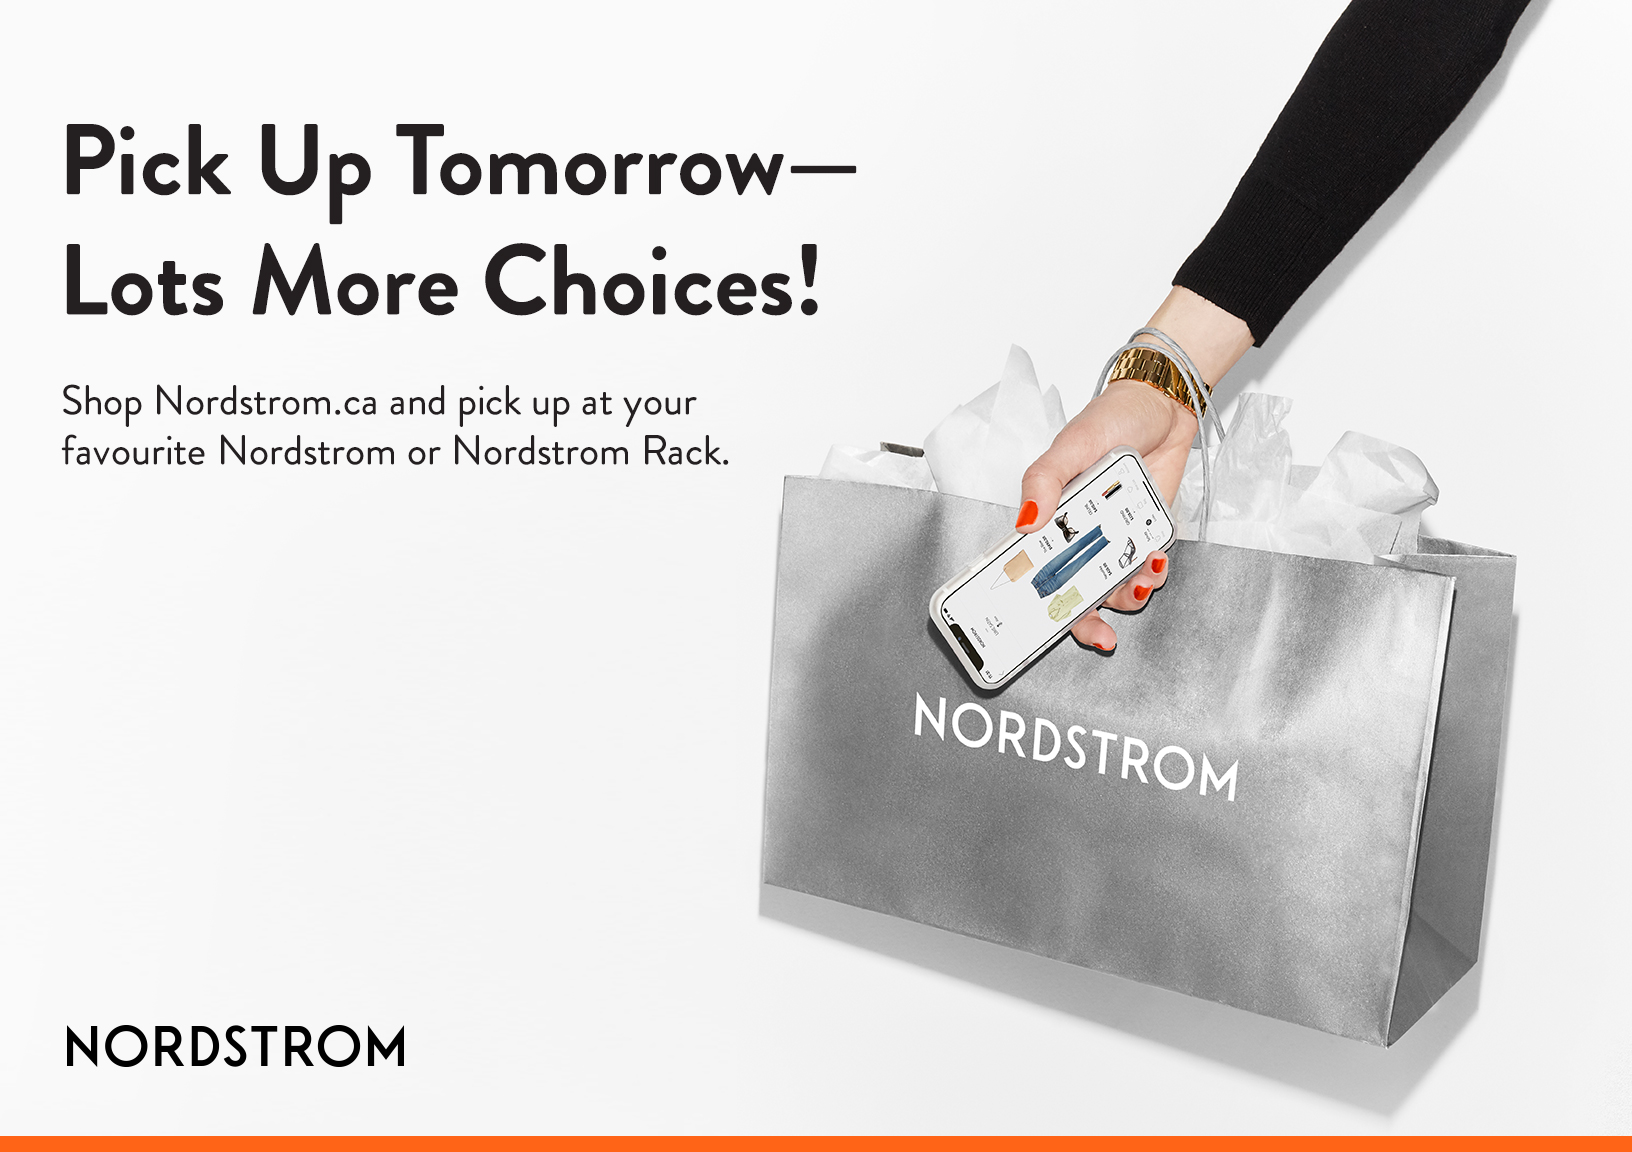 """""""Pick Up Tomorrow - Lots More Choices! Shop Nordstrom.ca and pick up from your favorite Nordstrom or Nordstrom Rack."""" This text is written on a white background next to a woman holding a Nordstrom Bag and a smartphone."""